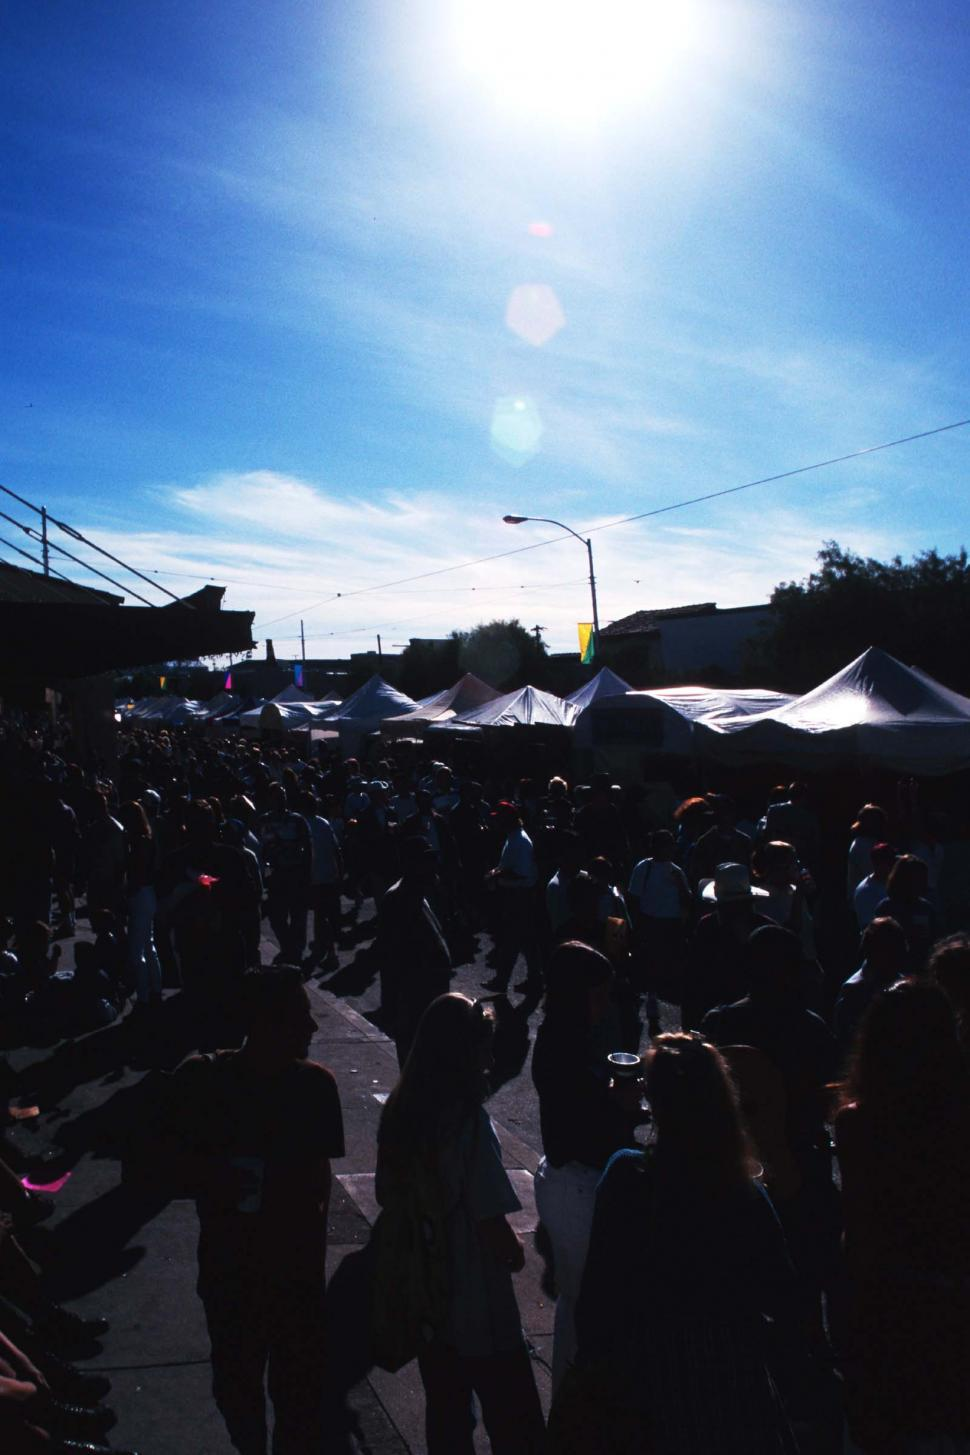 Download Free Stock HD Photo of Street fair silhouettes Online